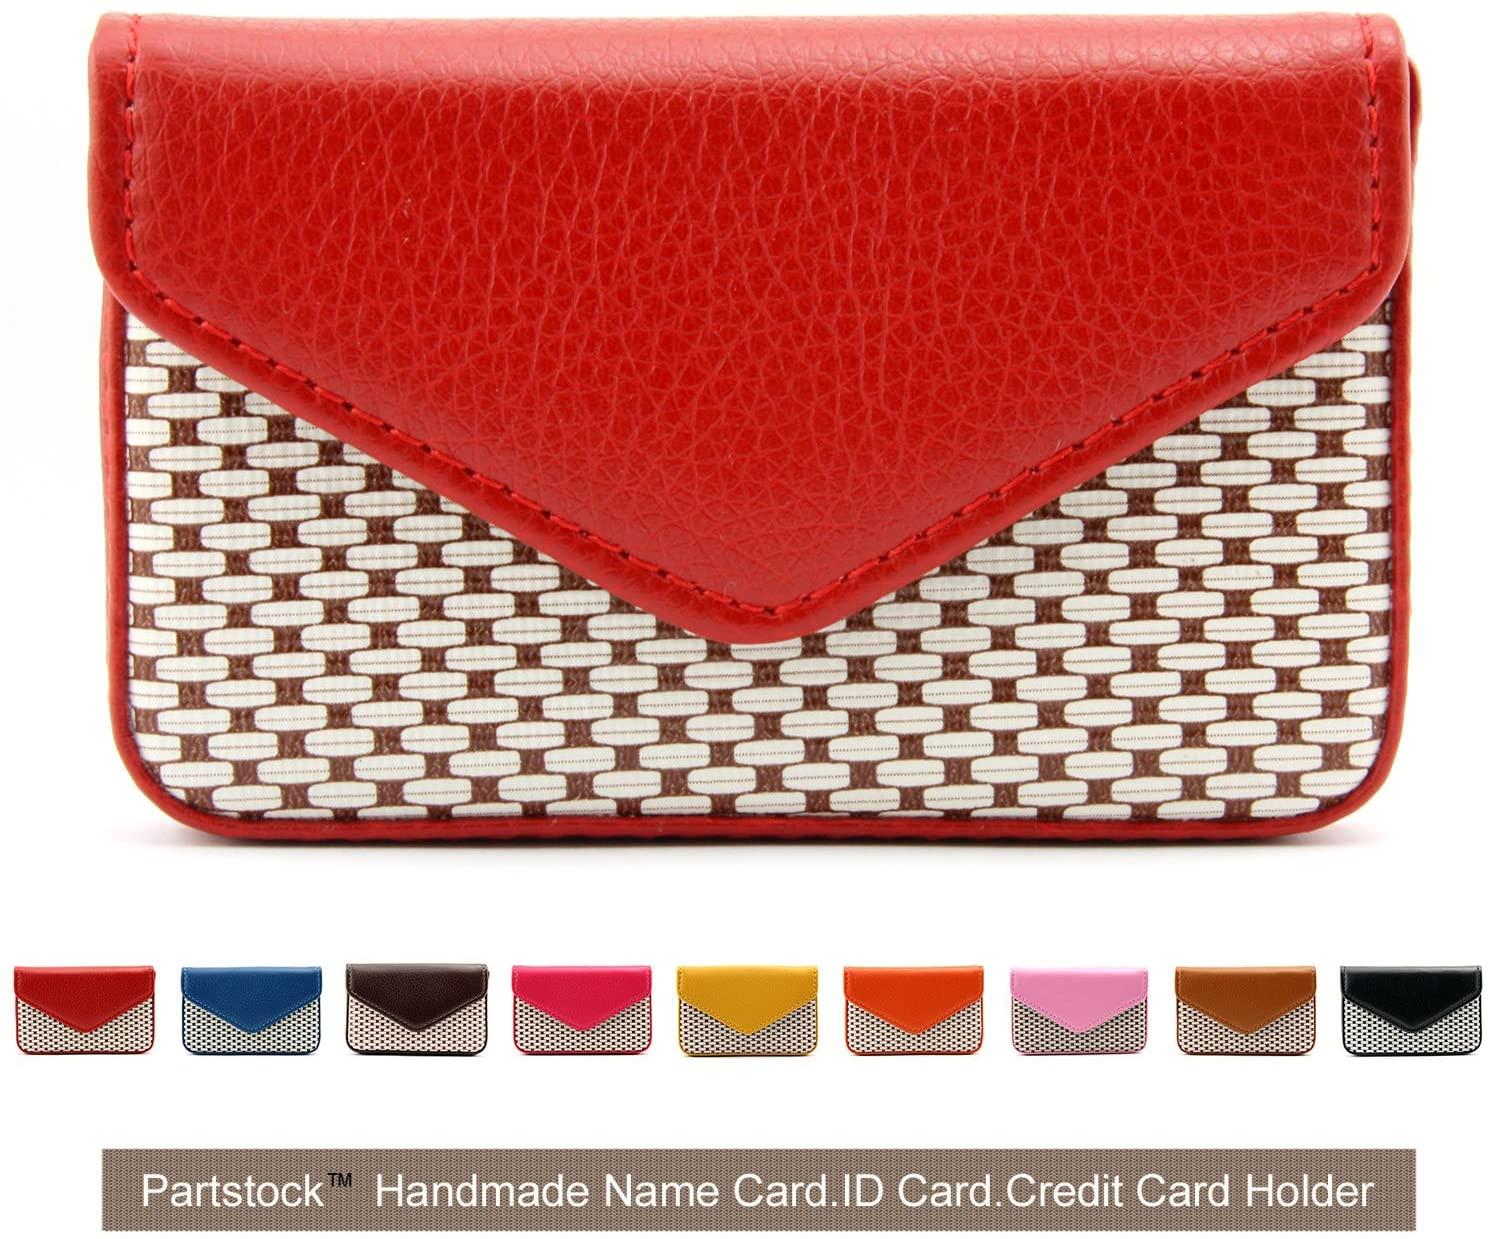 Partstock Multipurpose PU Leather Business Name Card Holder Wallet Leather Credit card ID Case / Holder / Cards Case with Magnetic Shut.Perfect Gift - Red